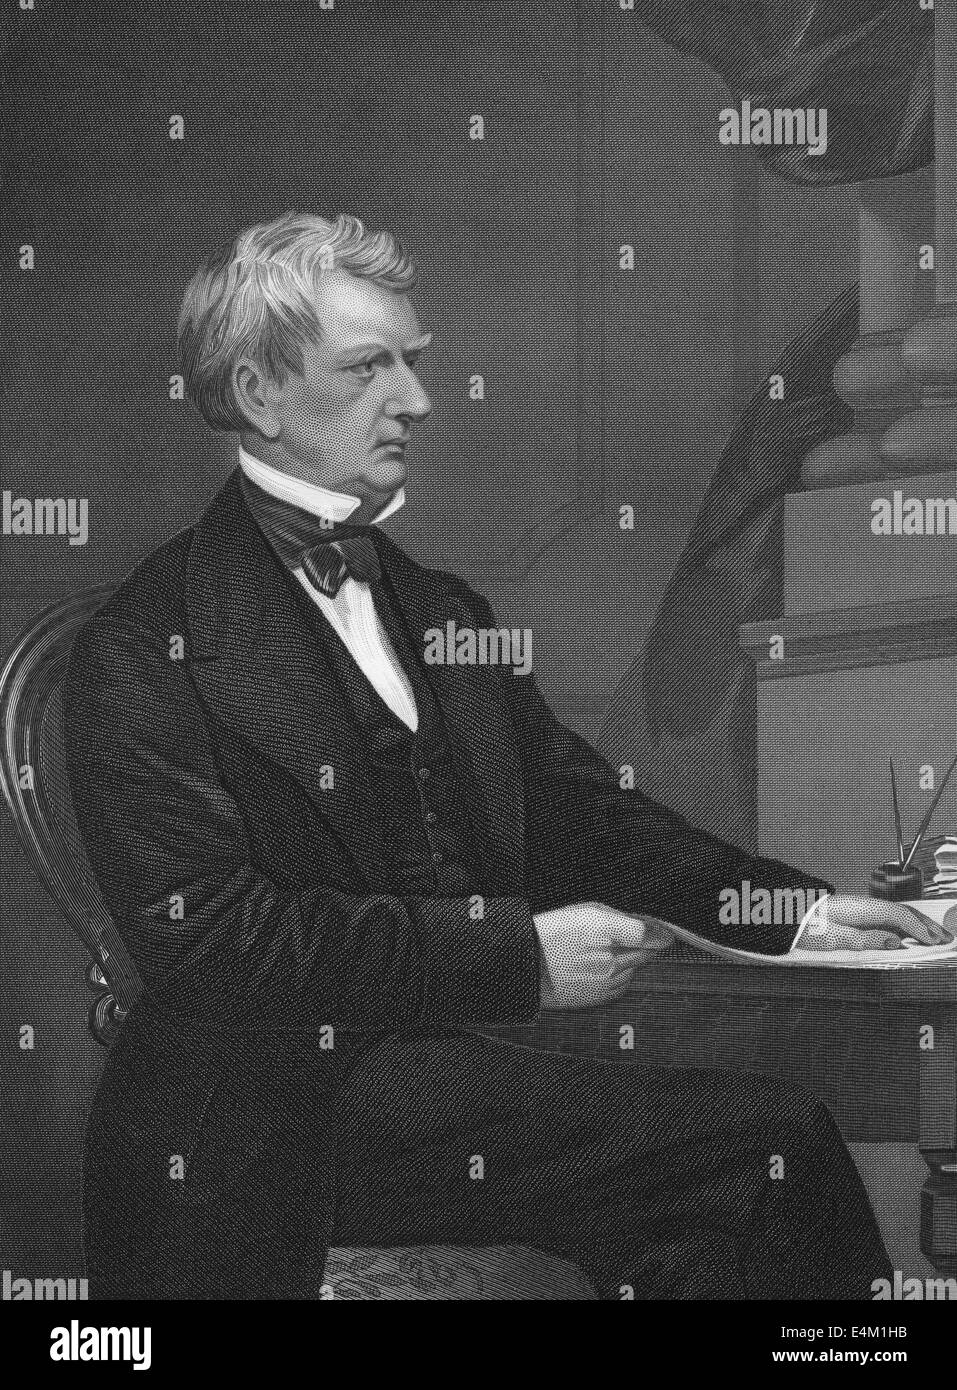 William Henry Seward, 1801 - 1872, an American politician, 12th Governor of New York - Stock Image